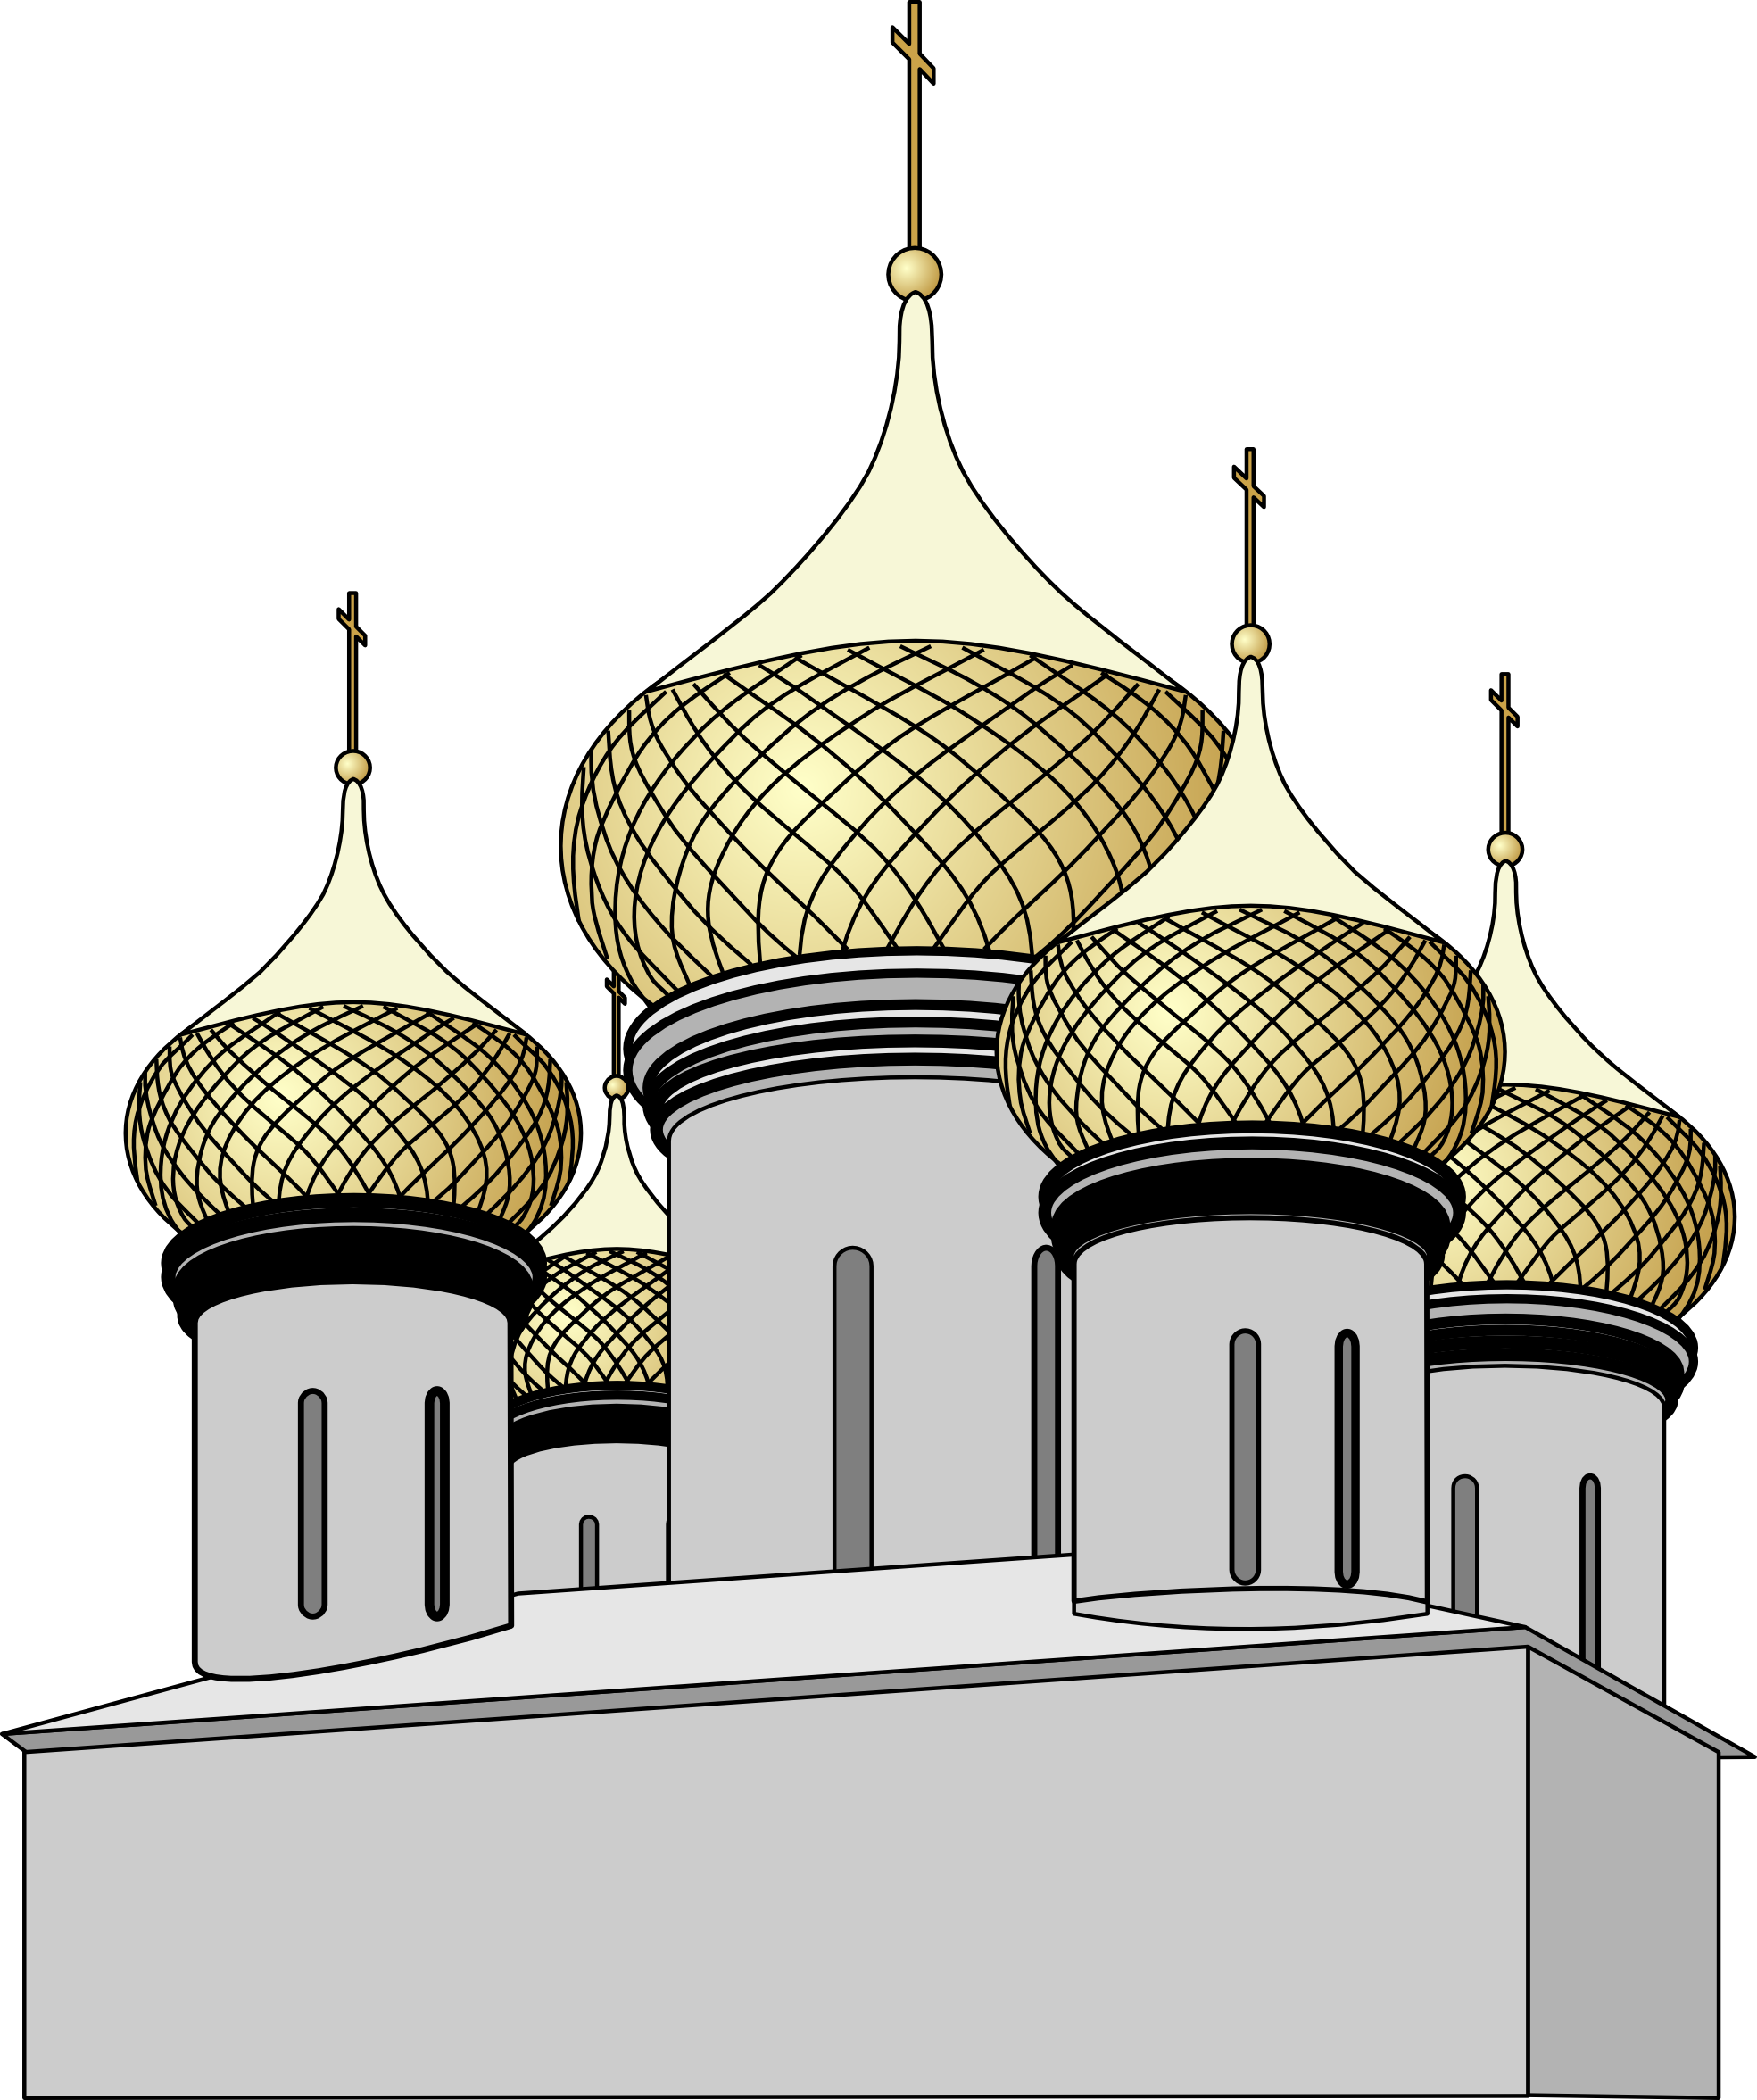 graphic freeuse stock Mosque arabe pinterest. Building clipart religion